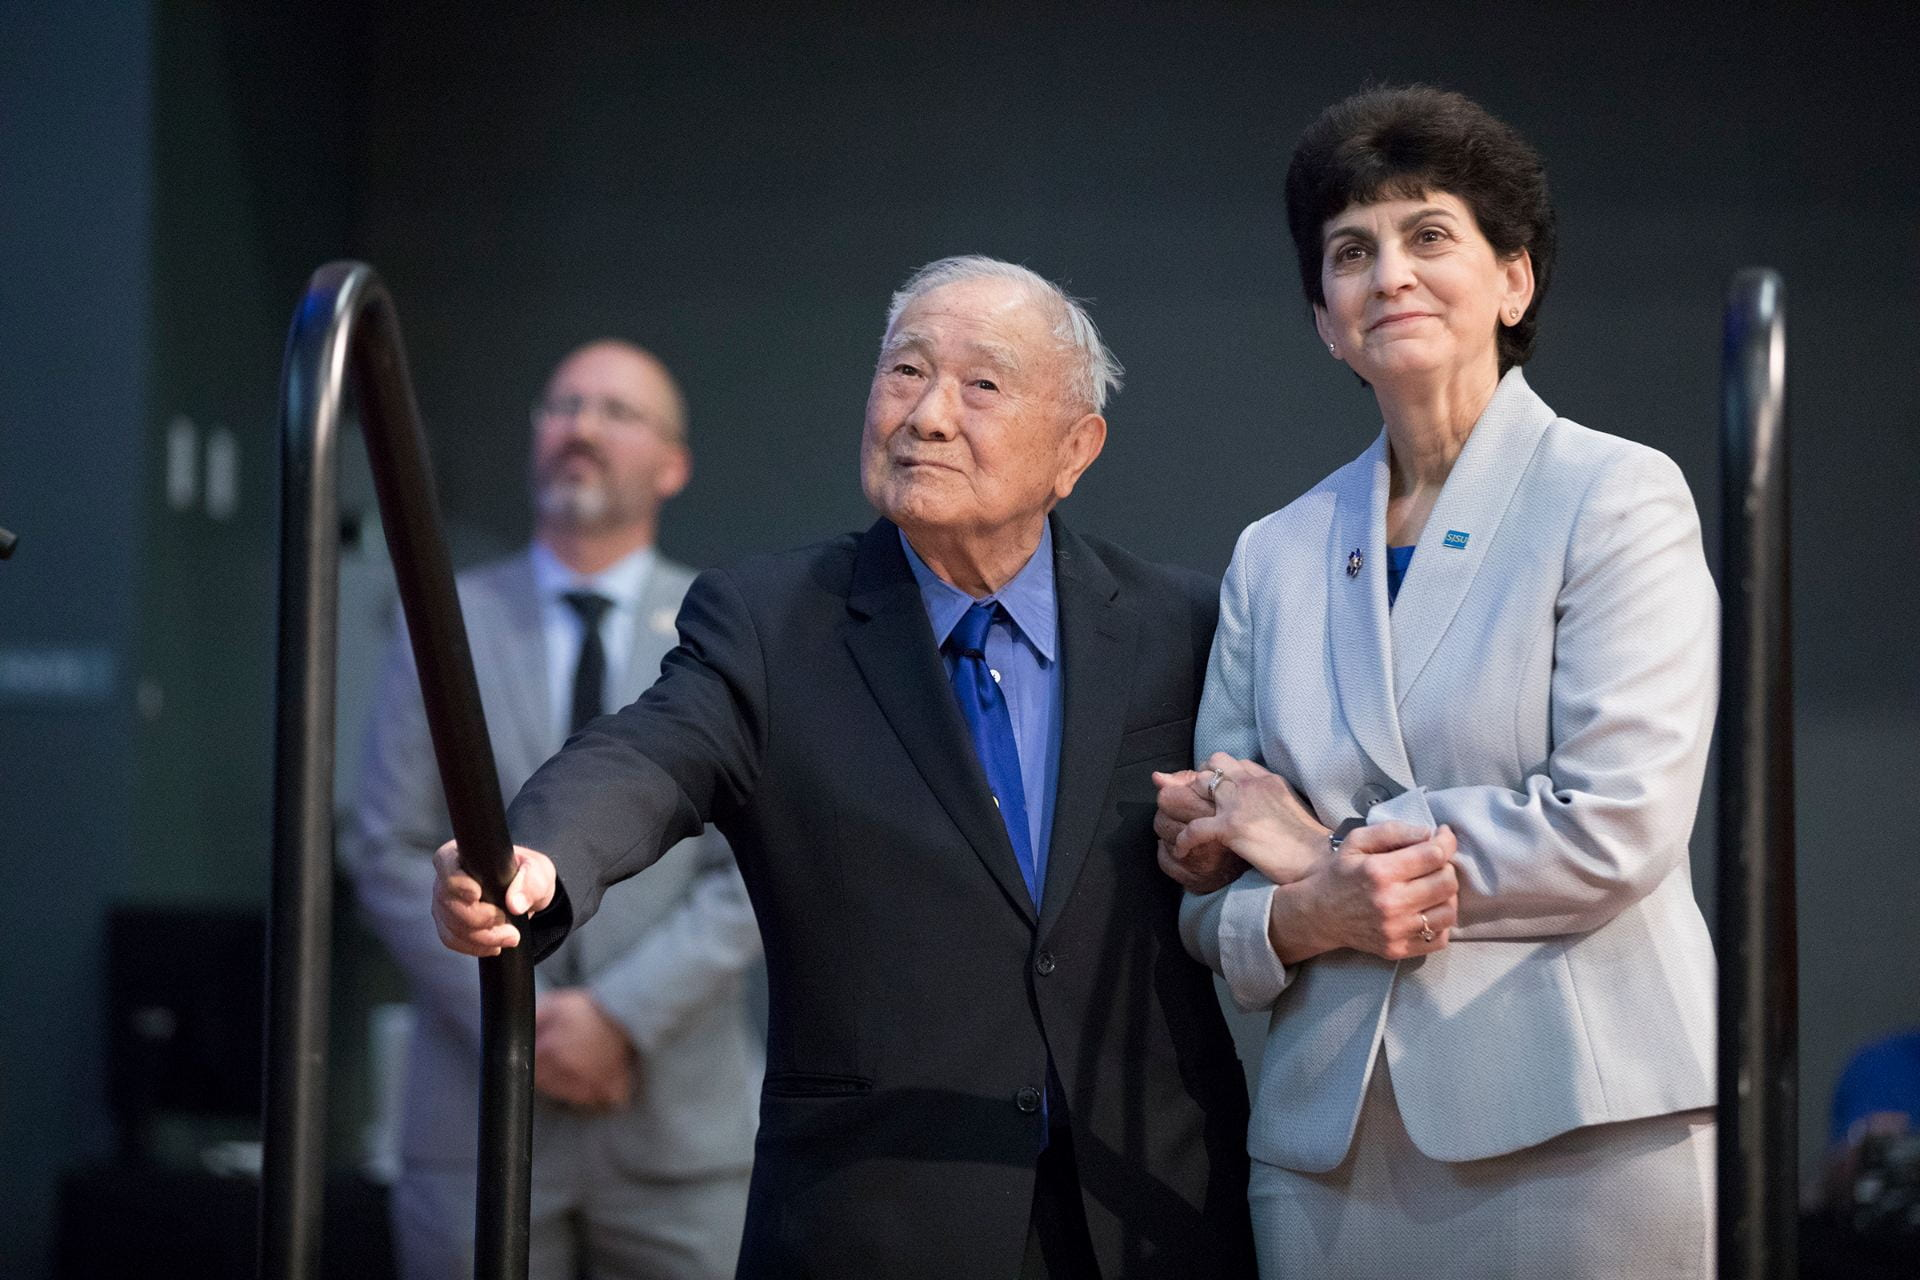 Yoshihiro Uchida, '47 Biological Sciences, walks to the stage with President Mary Papazian during the 2018 Faculty Service and Recognition Awards when he was honored for 70 years of service to SJSU. Photo by David Schmitz